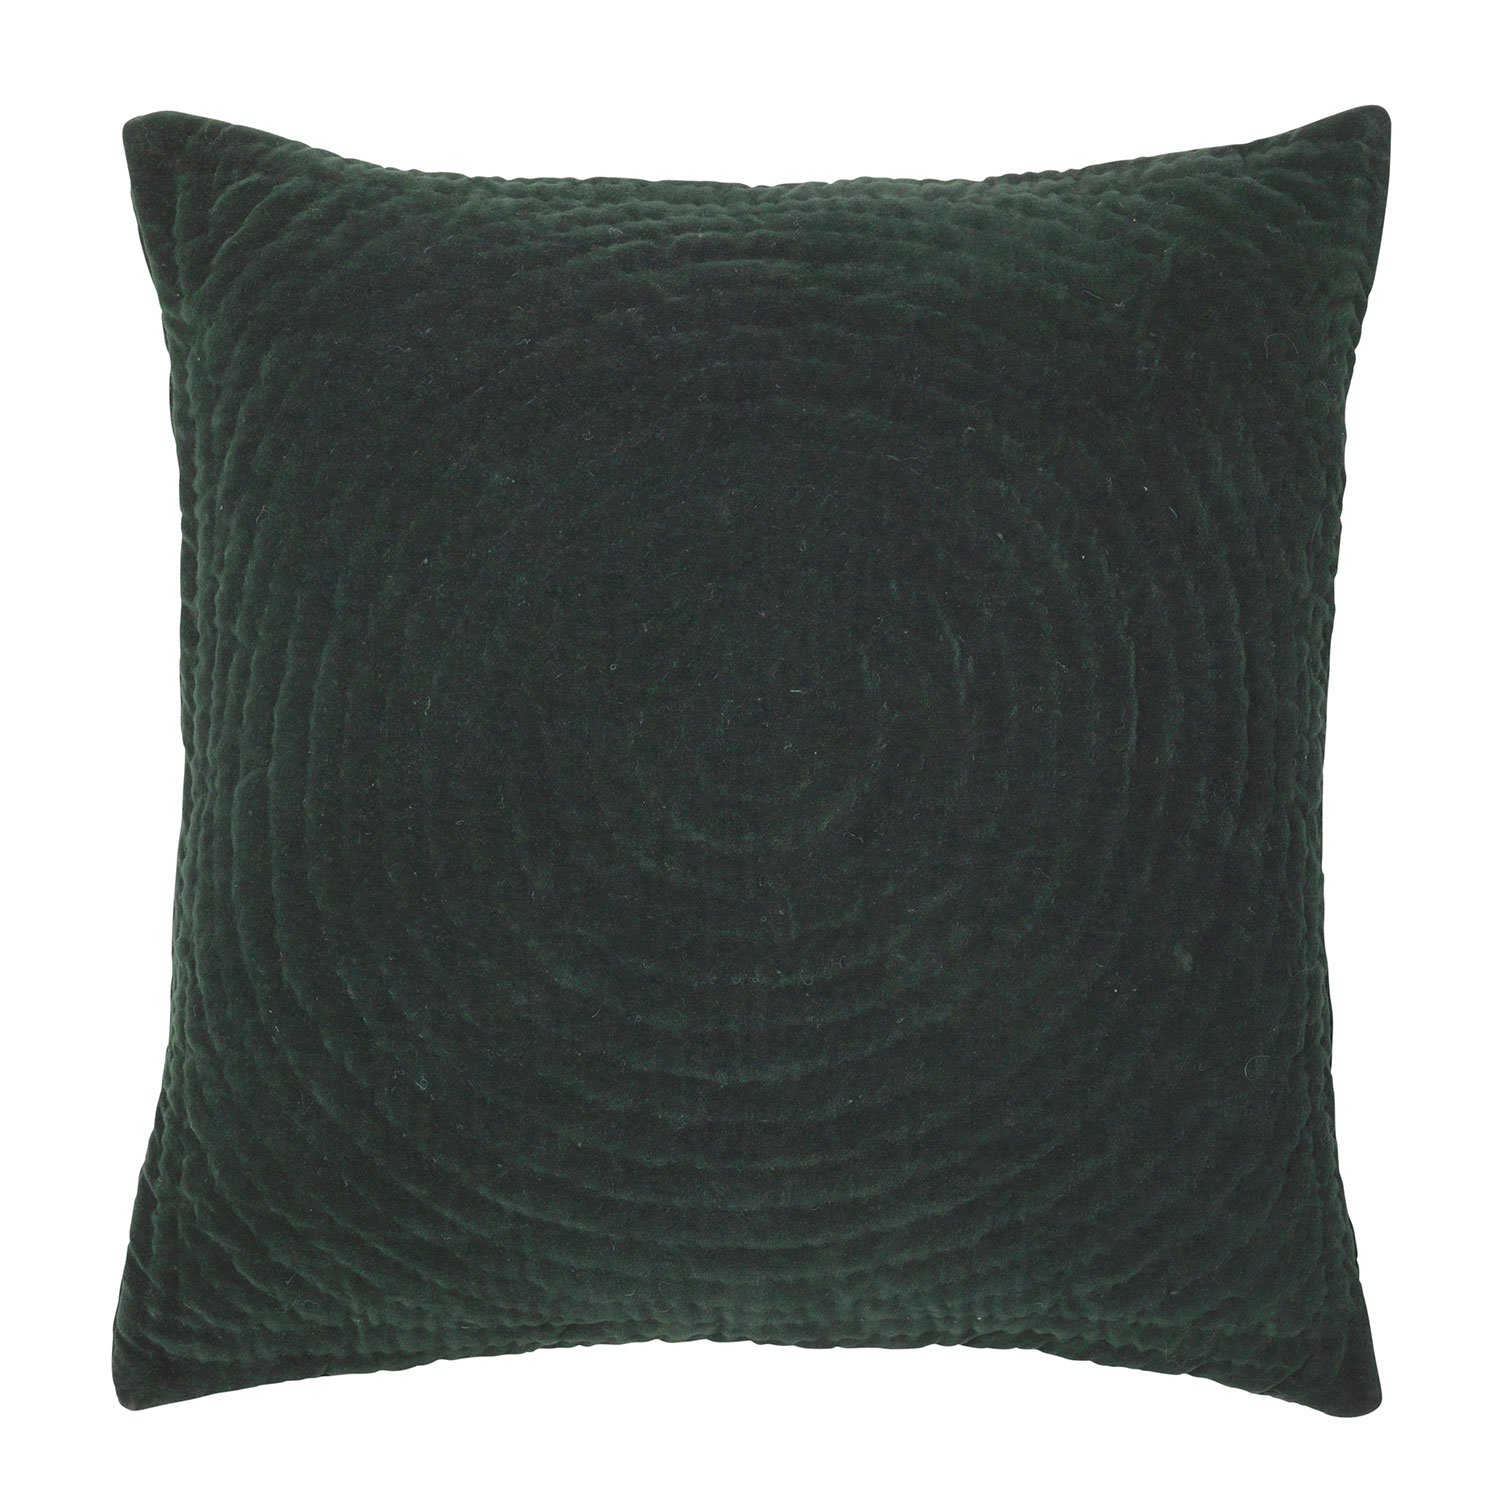 Quilt Ring Cushion Cover 60x60cm, Deep Forest